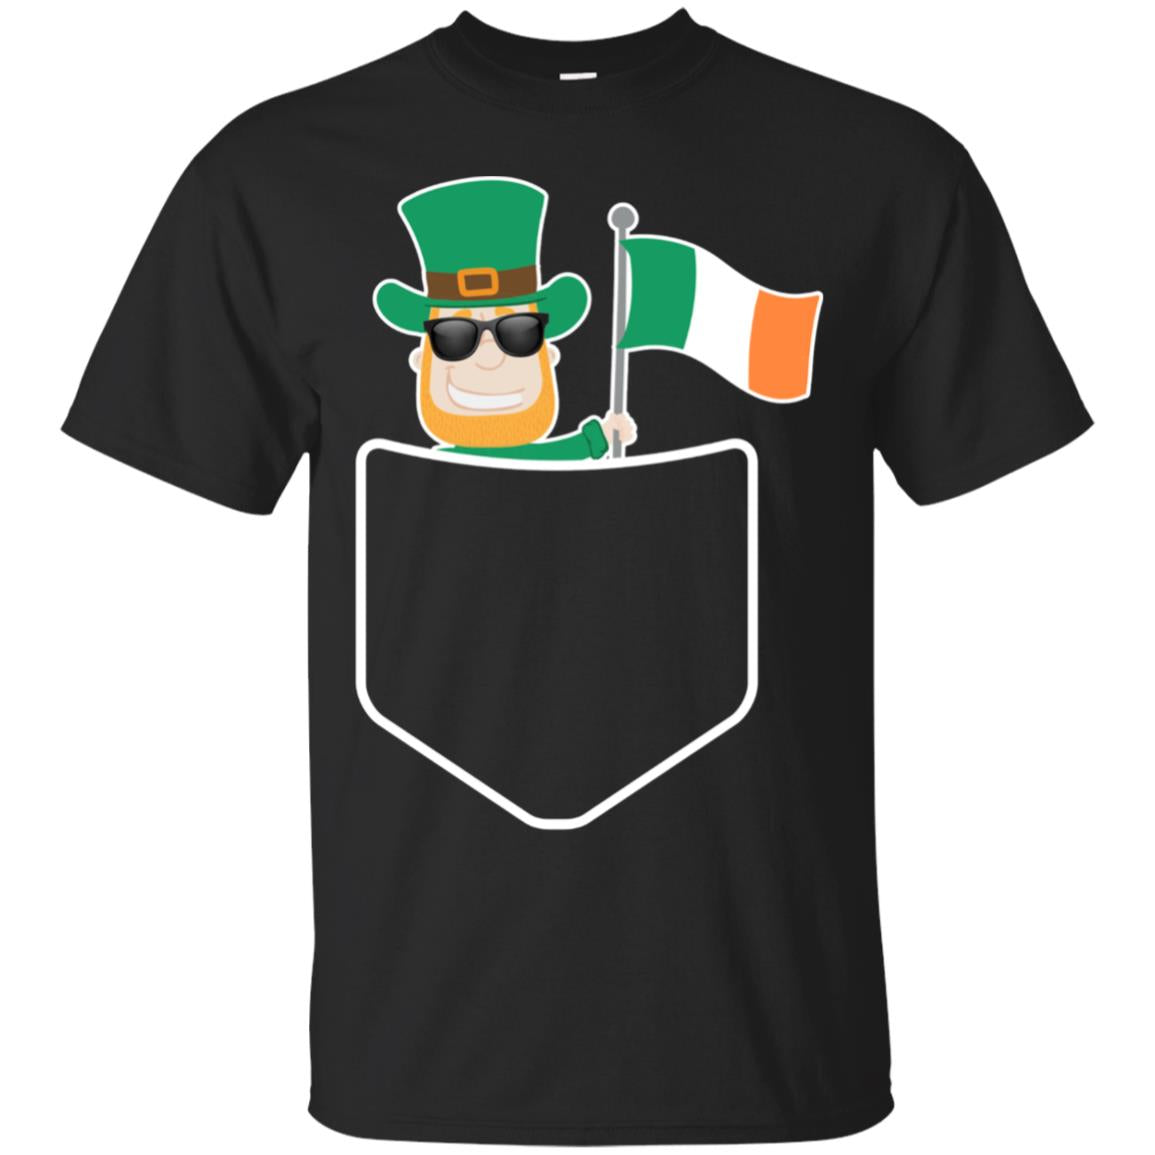 Leprechaun Irish Flag in Pocket Shirt Ireland St. Pattys Day 99promocode